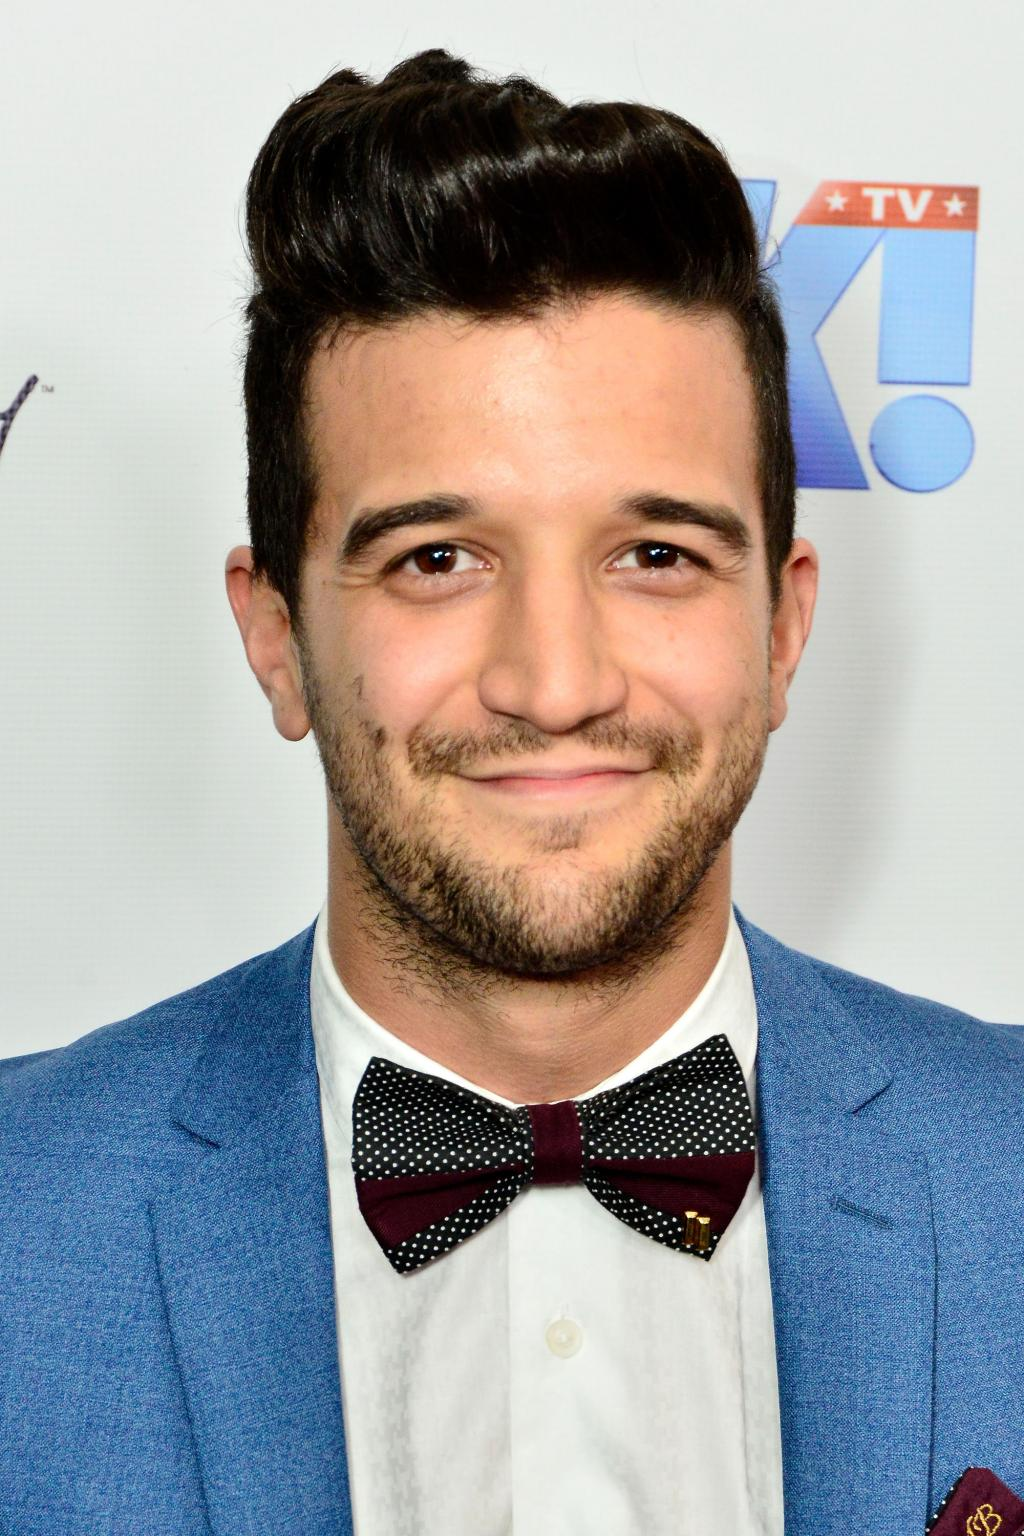 Dancing With The Stars' 2014 News: Mark Ballas Admits Kim Kardashian